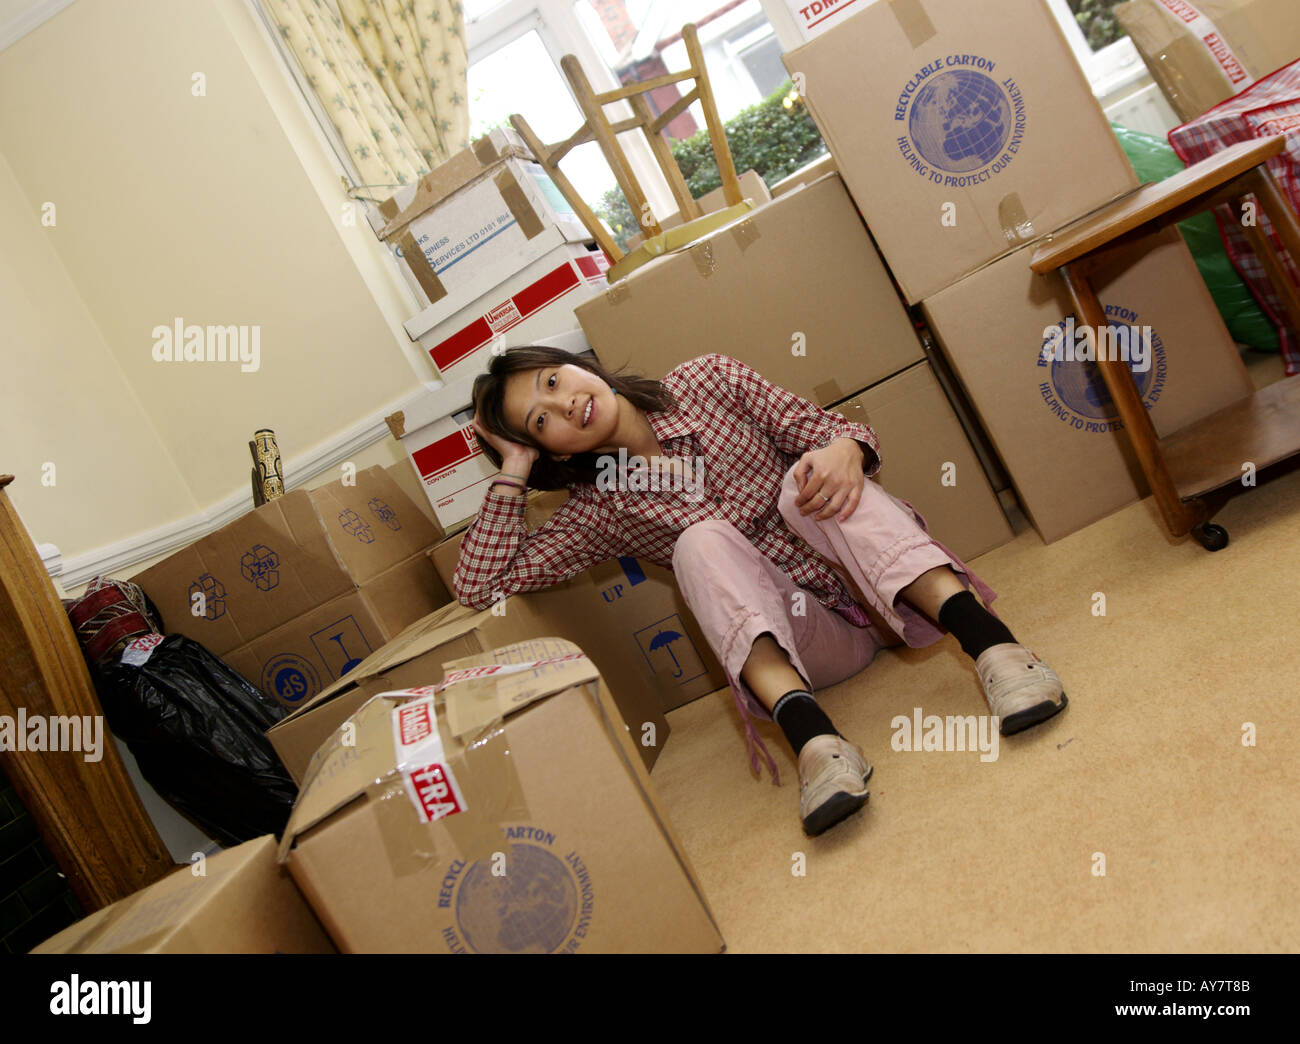 a young woman relaxes happy after move into new home Stock Photo